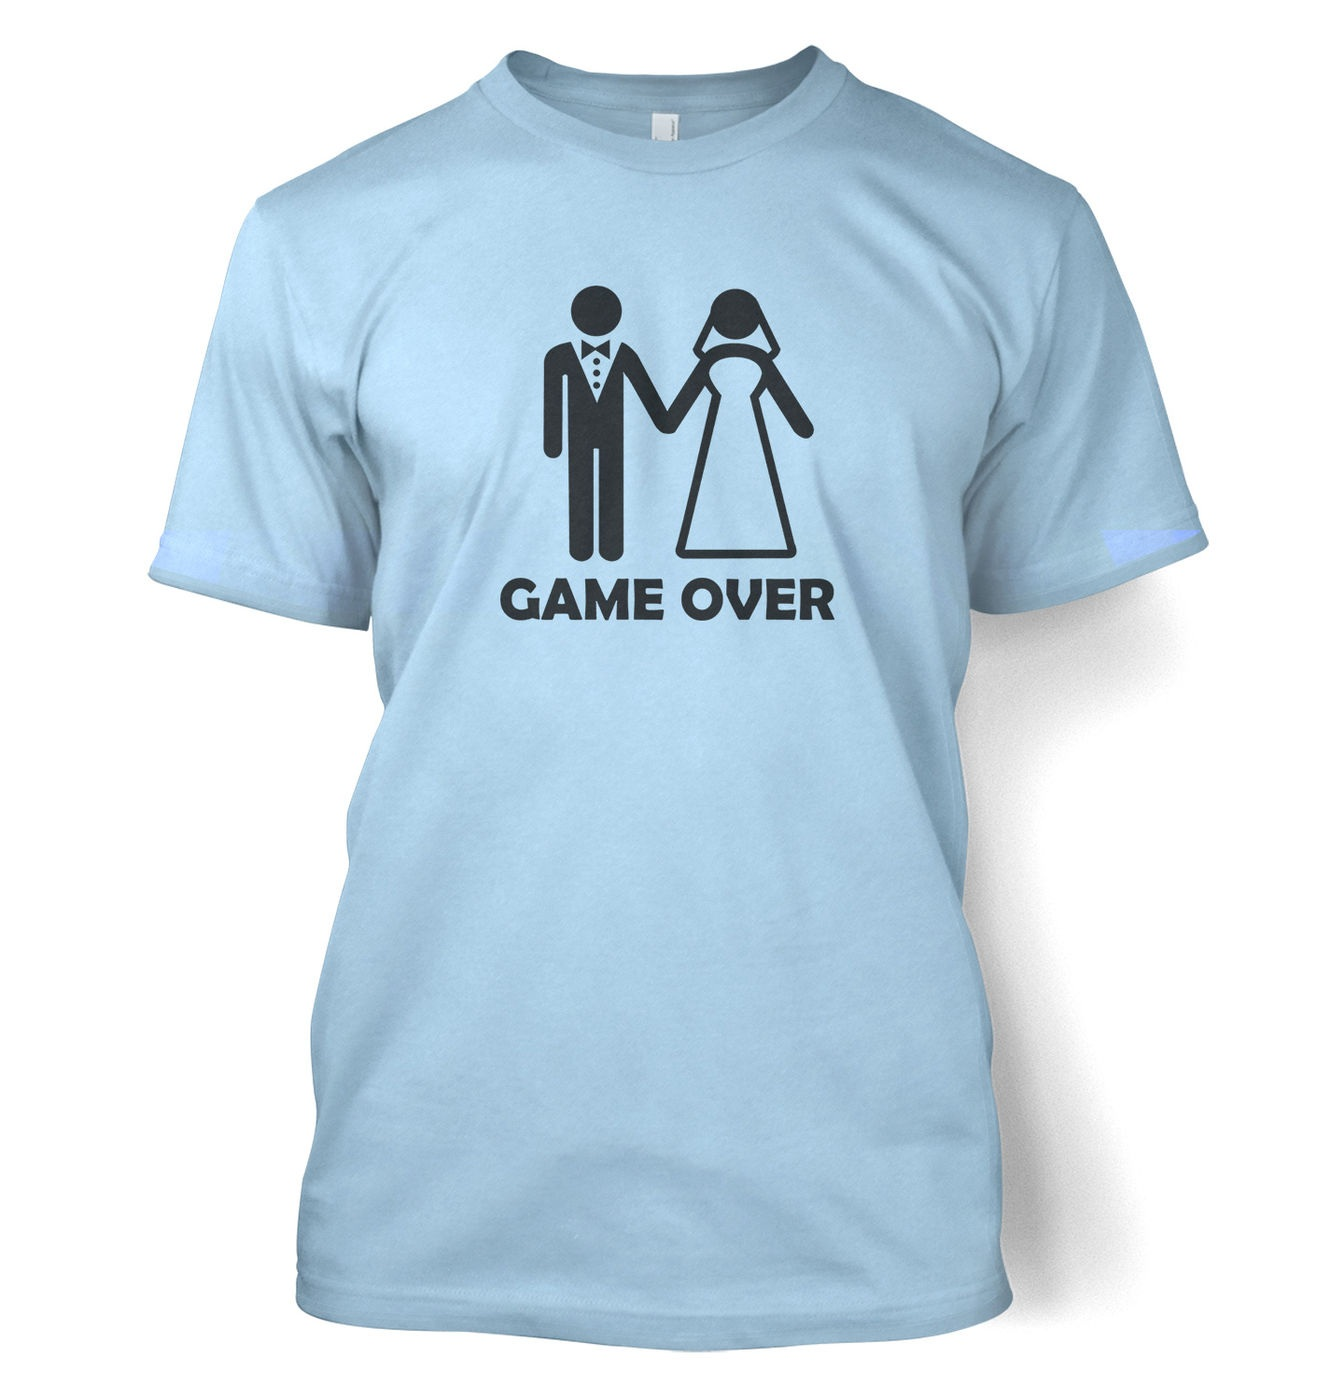 Game Over men's t-shirt by Something Geeky